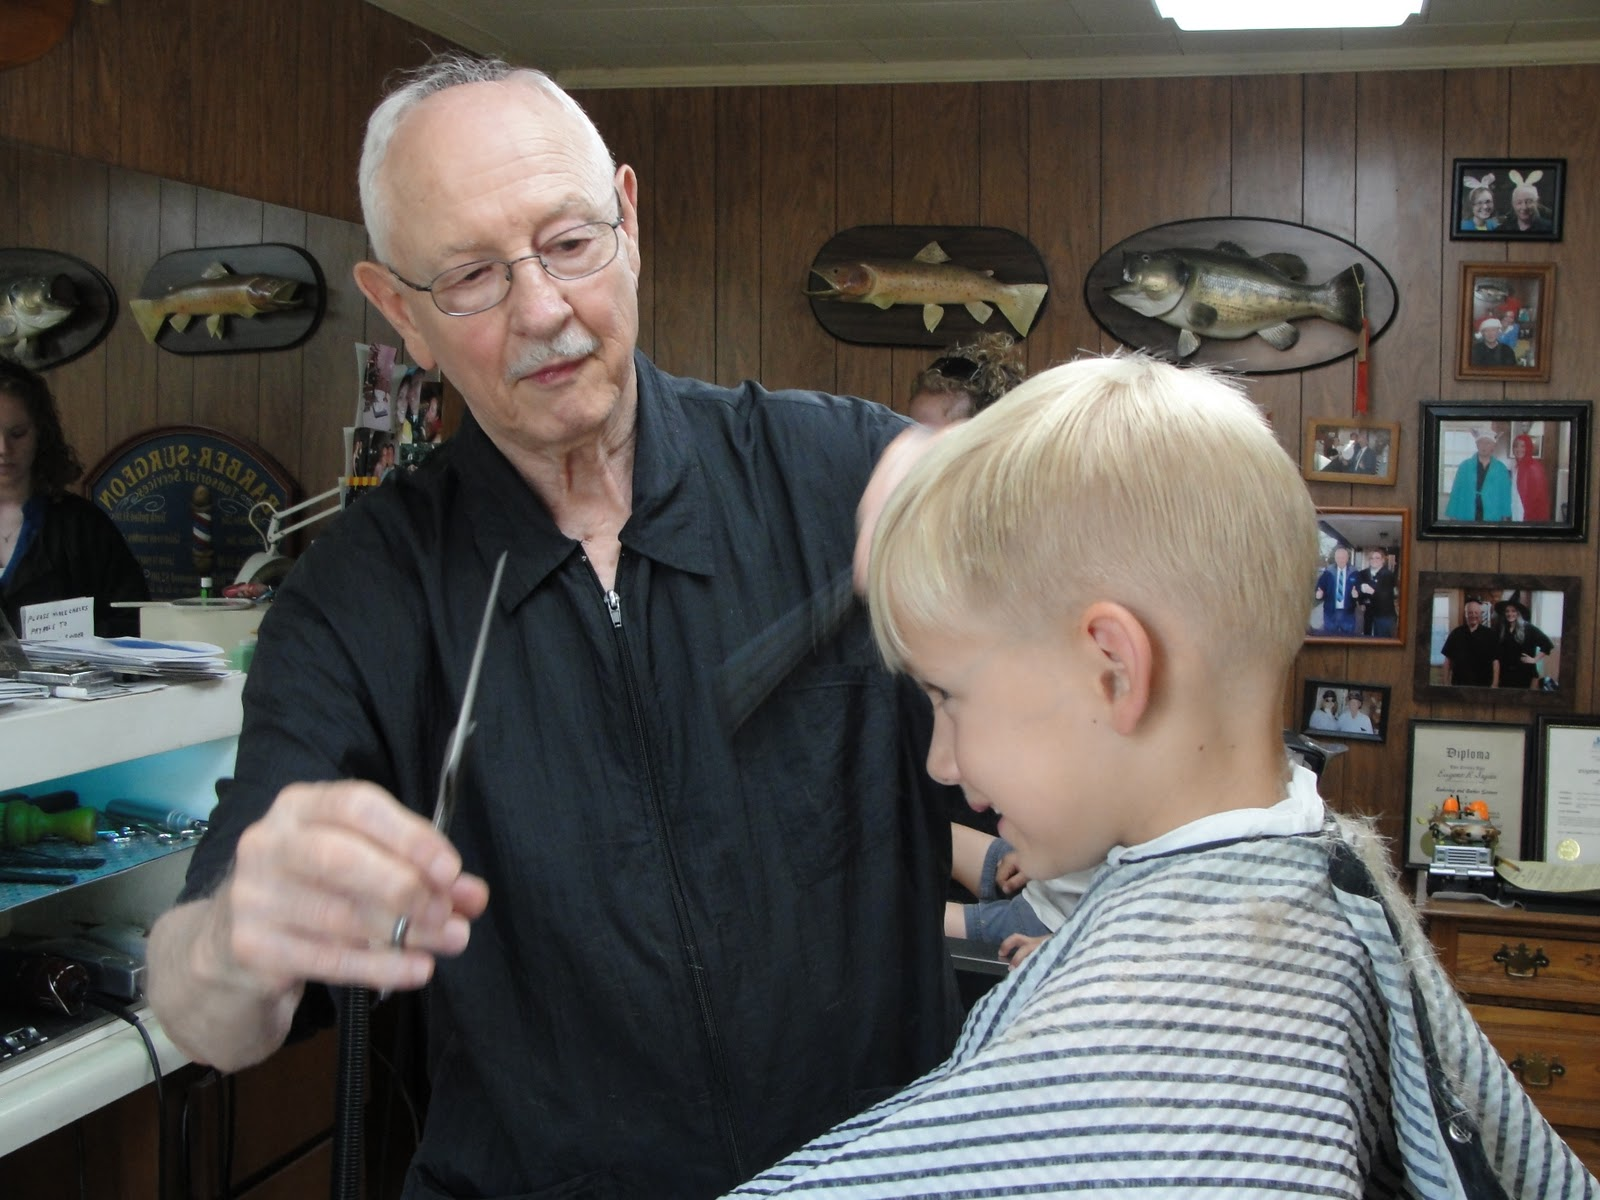 This is Gene the barber. He cuts my boys' hair, Pappy and Grandpa's ...